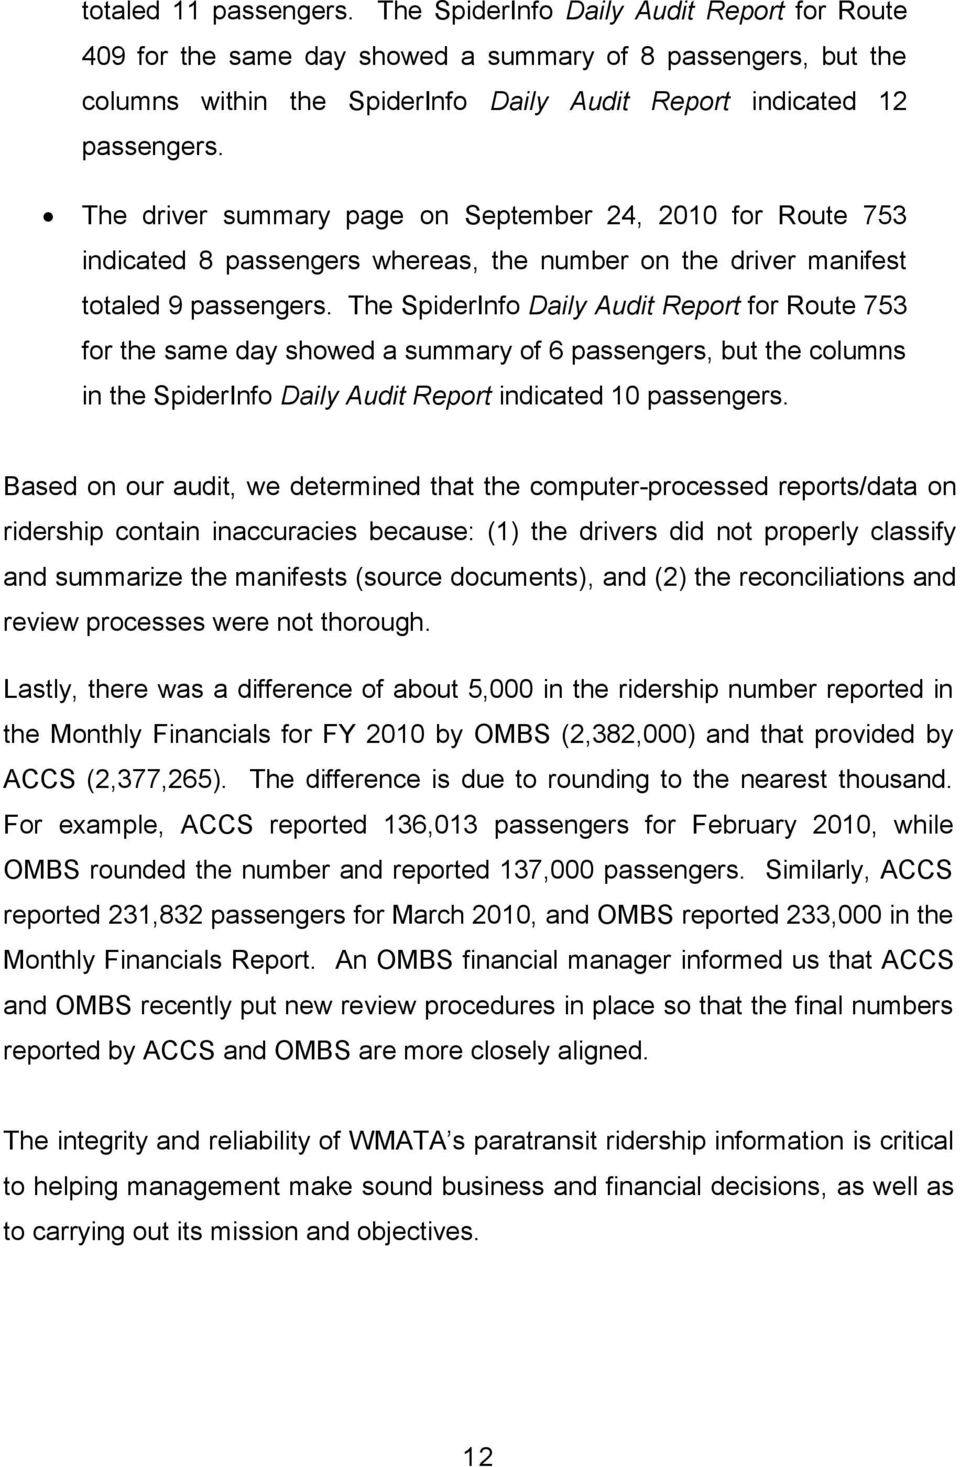 The driver summary page on September 24, 2010 for Route 753 indicated 8 passengers whereas, the number on the driver manifest totaled 9 passengers.